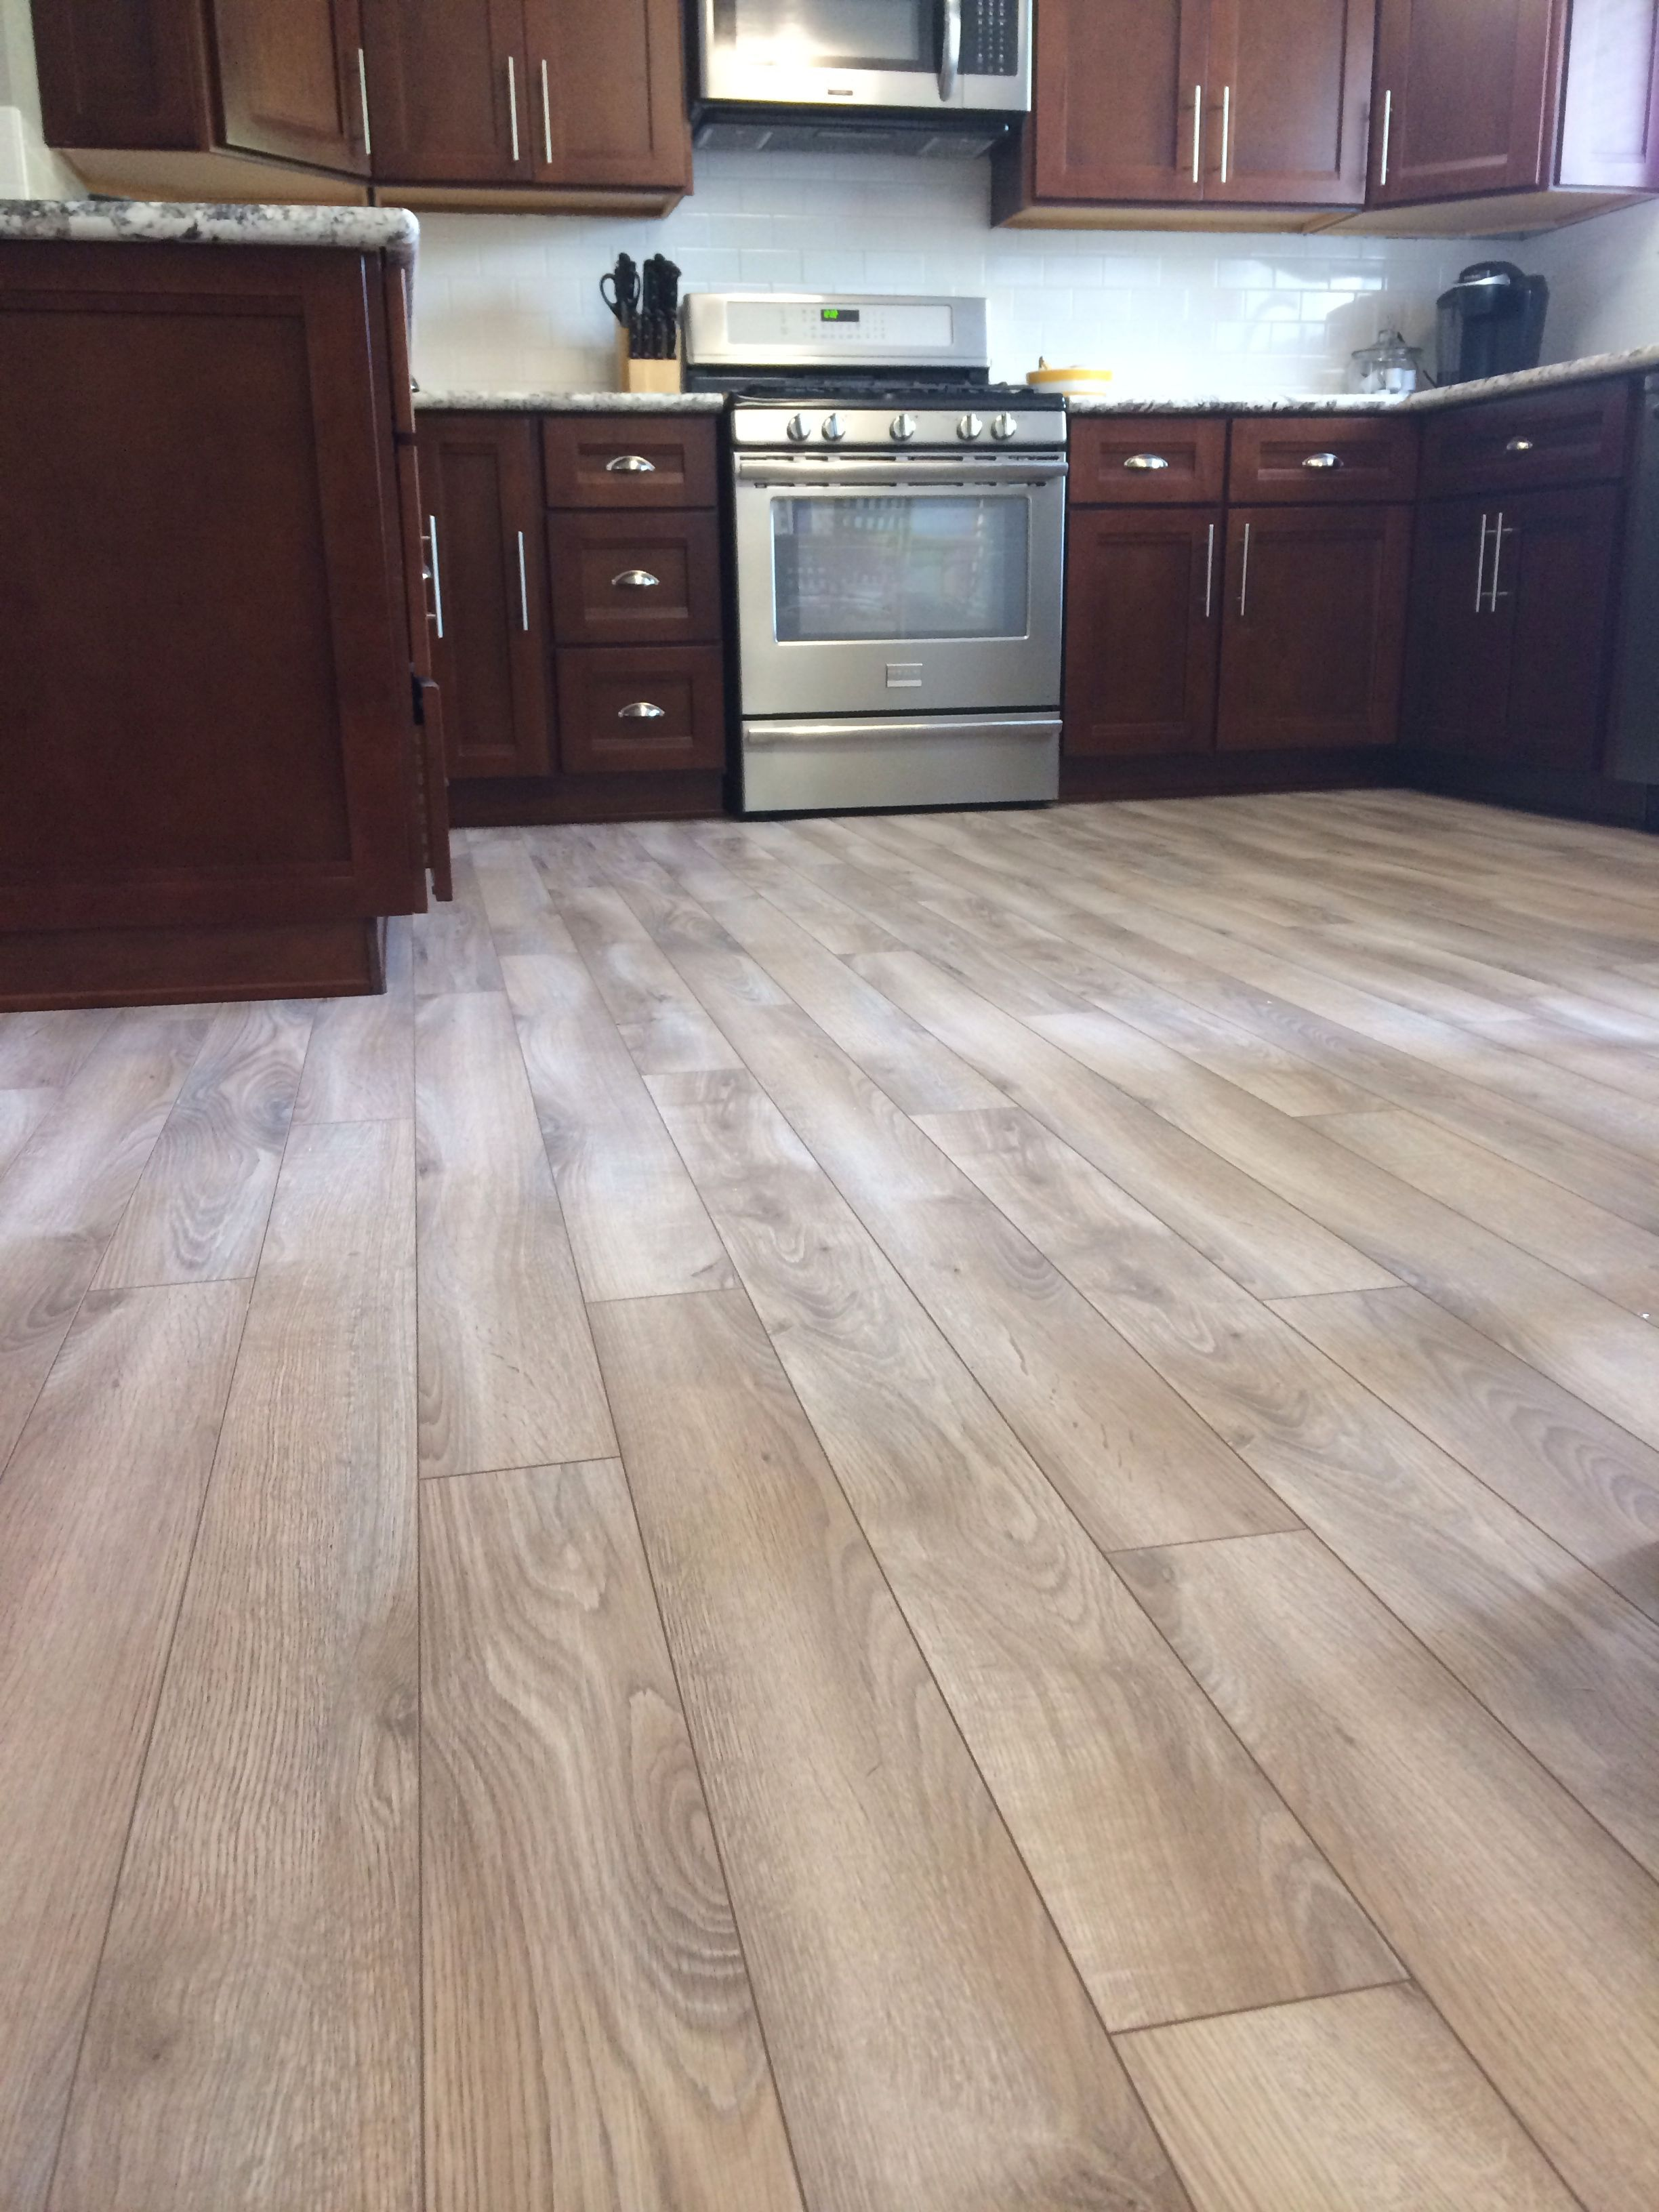 Installing Laminate Flooring In Kitchen Under the